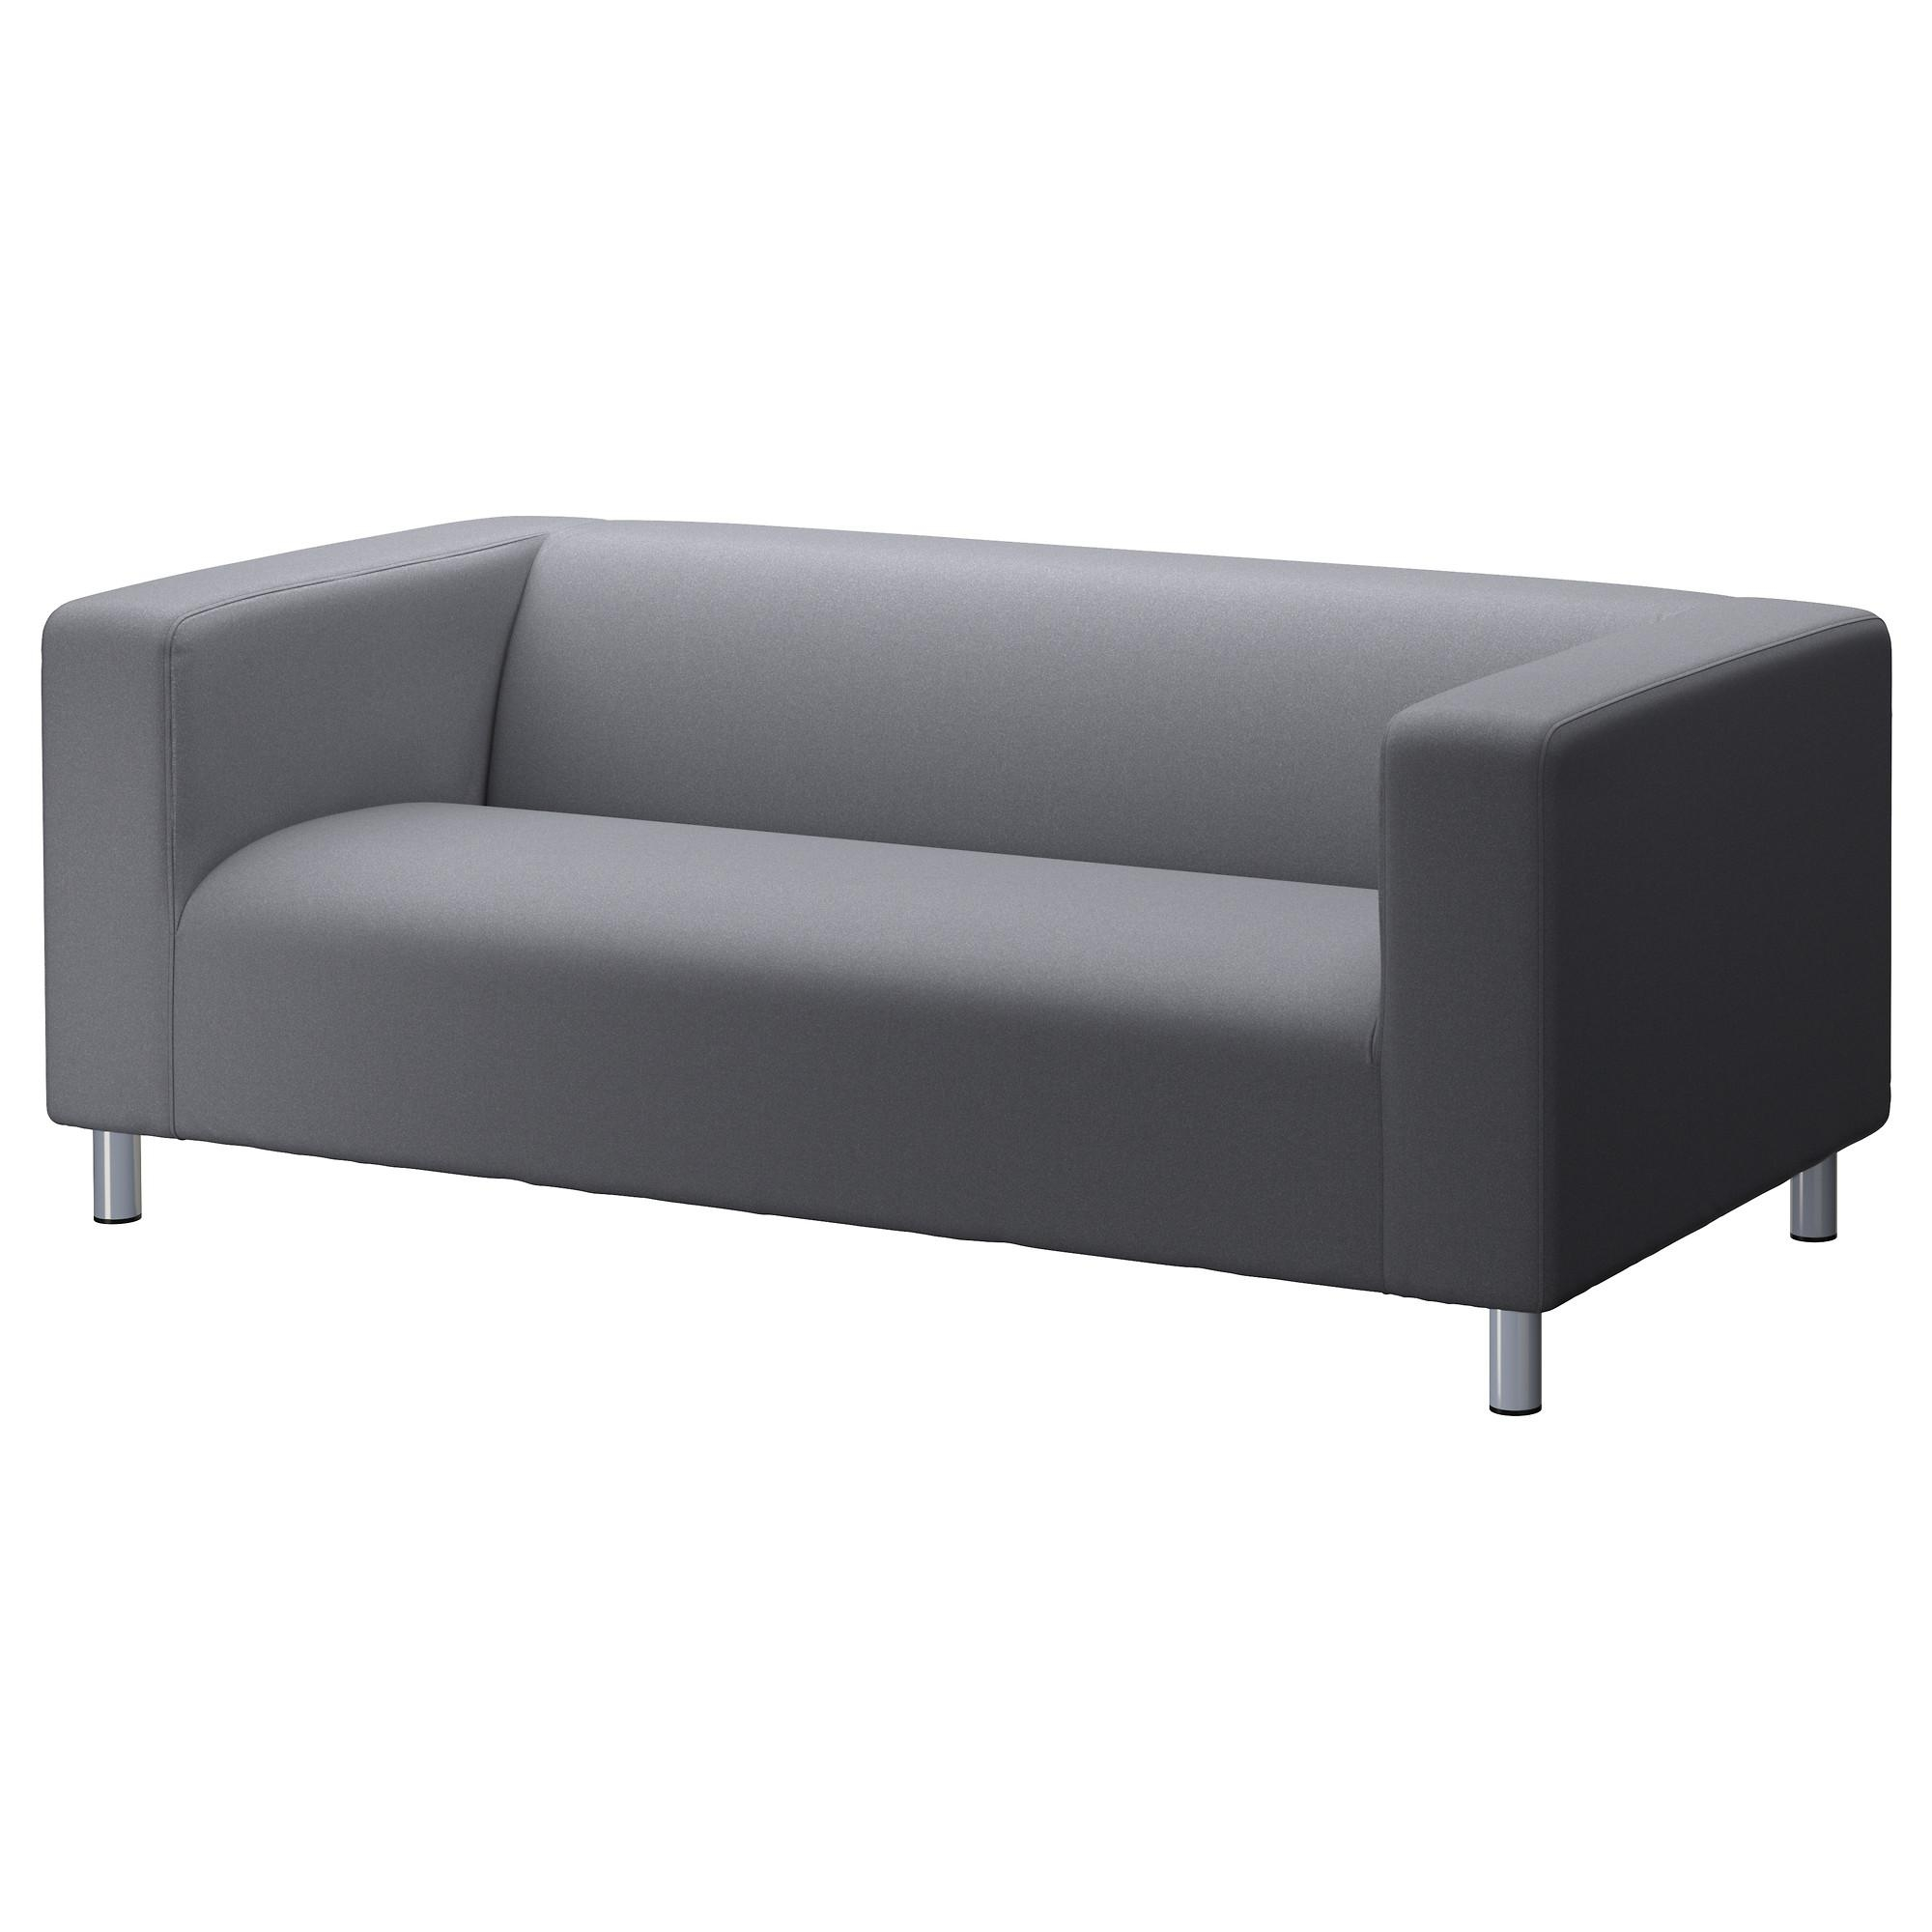 Small Sofa & 2 Seater Sofa | Ikea Within Two Seater Sofas (View 18 of 20)